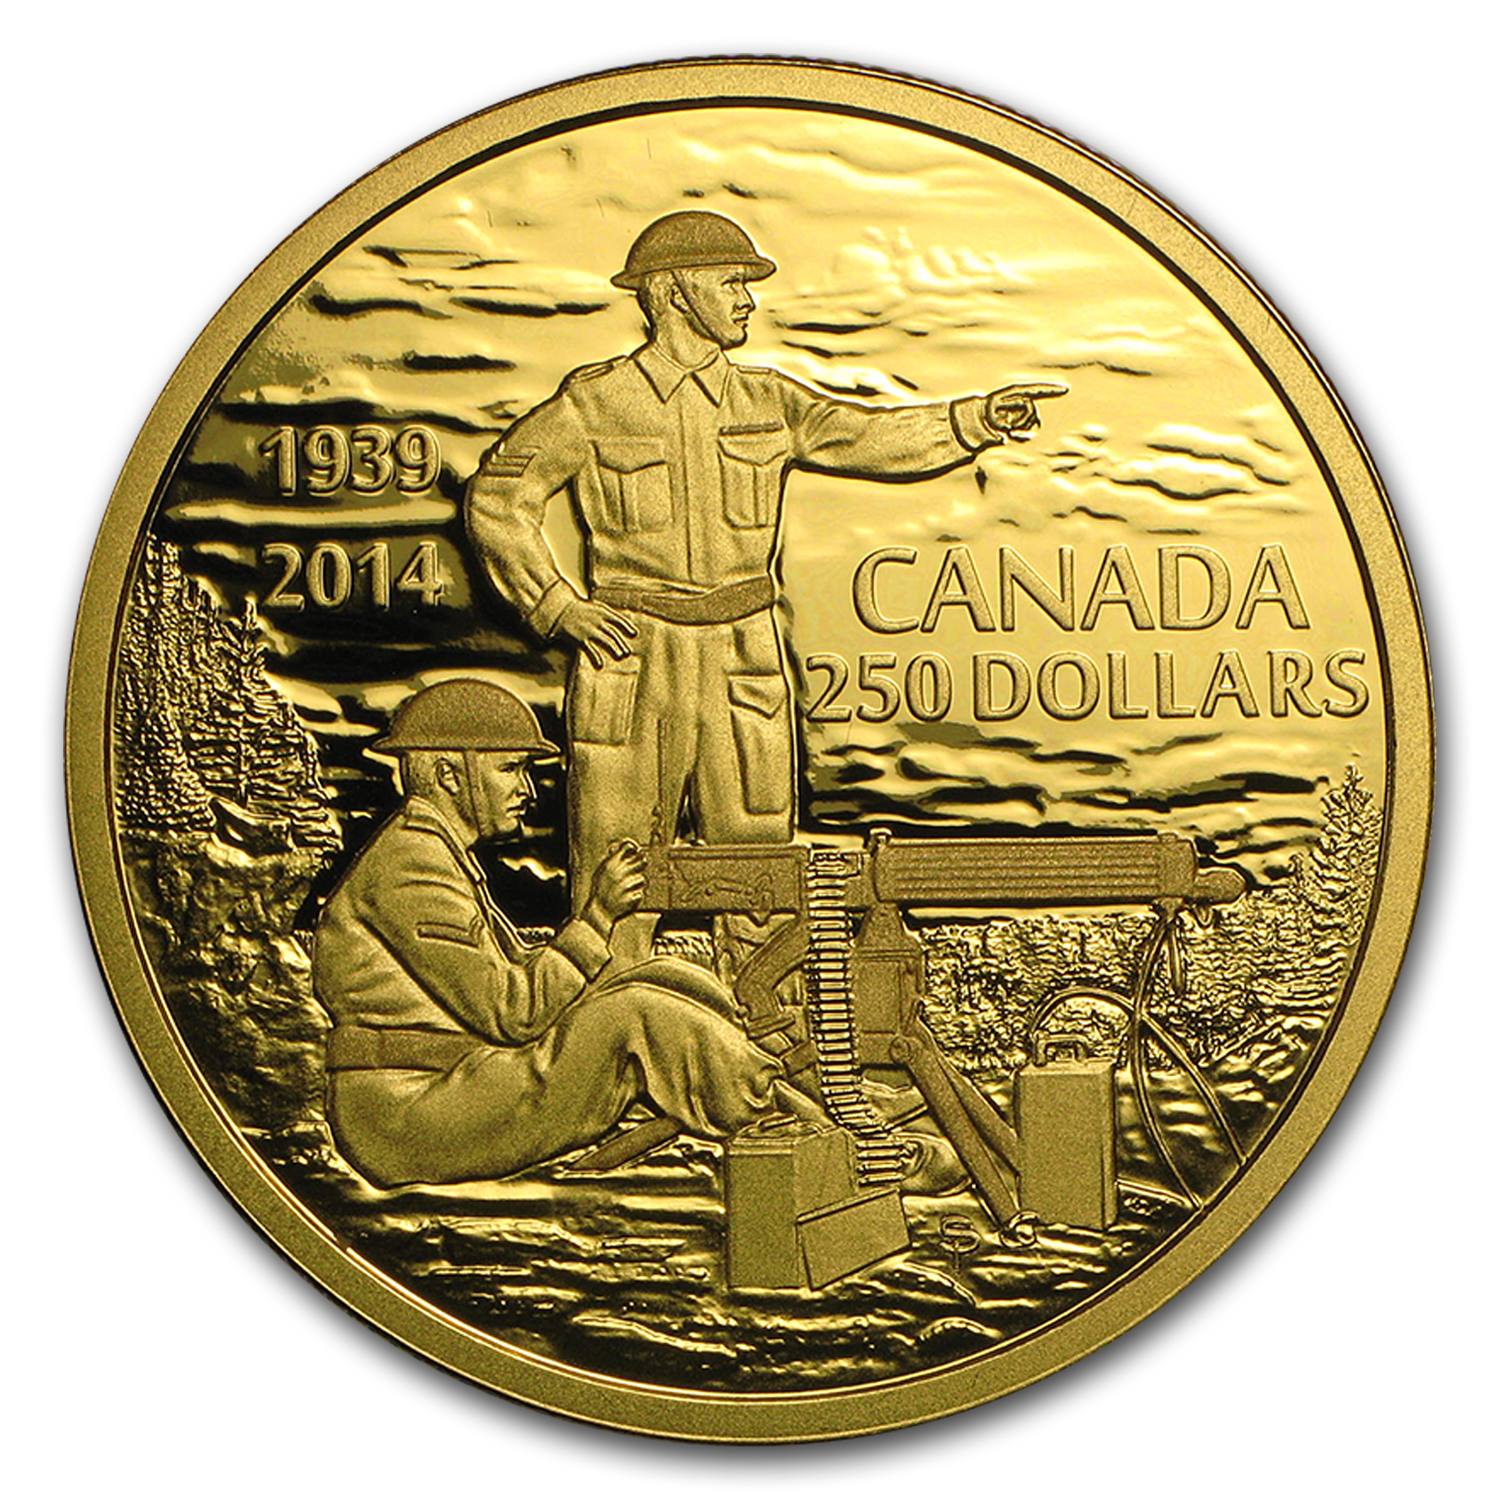 2014 Canada 2 oz Proof Gold $250 Anniversary of WWII